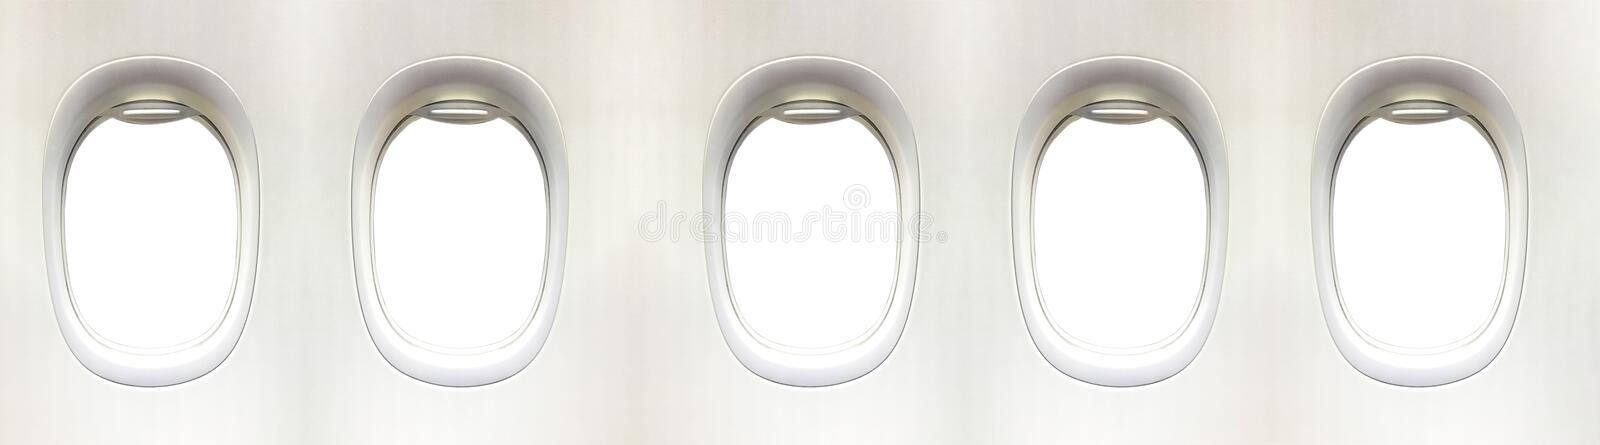 Airplane window and space for your design, 5 plane window, clipping path stock photo